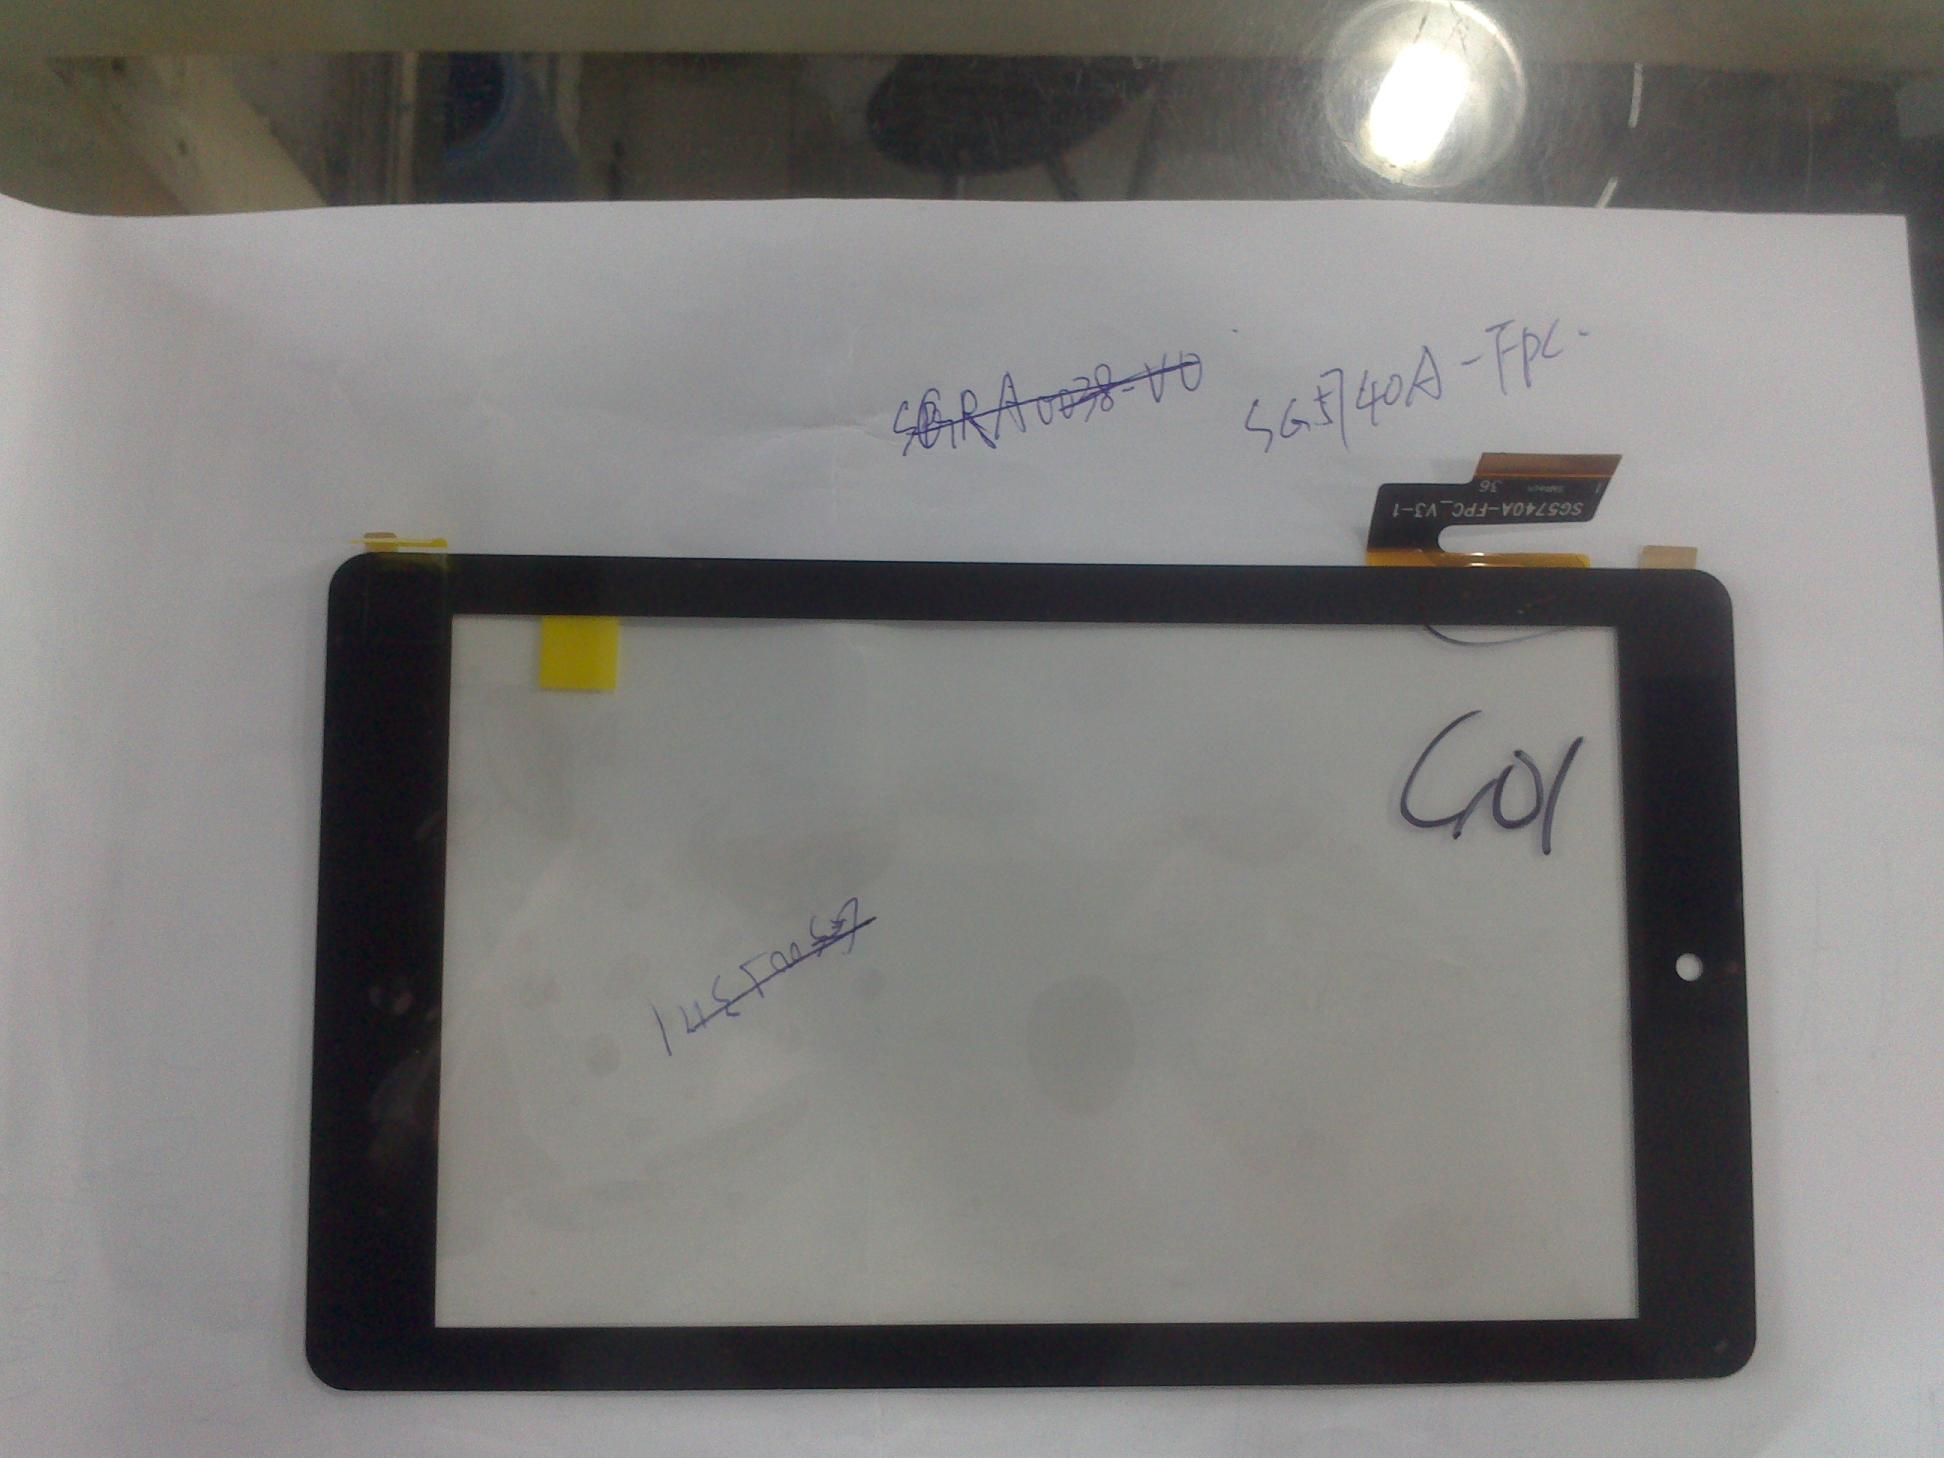 Запчасти для мобильных телефонов 7 inch new handwriting Tablet capacitive touch screen screen screen number is sg5740a/fpc_v3/1 SG5740A-FPC_V3-1 new f940got lwd c touch screen panel